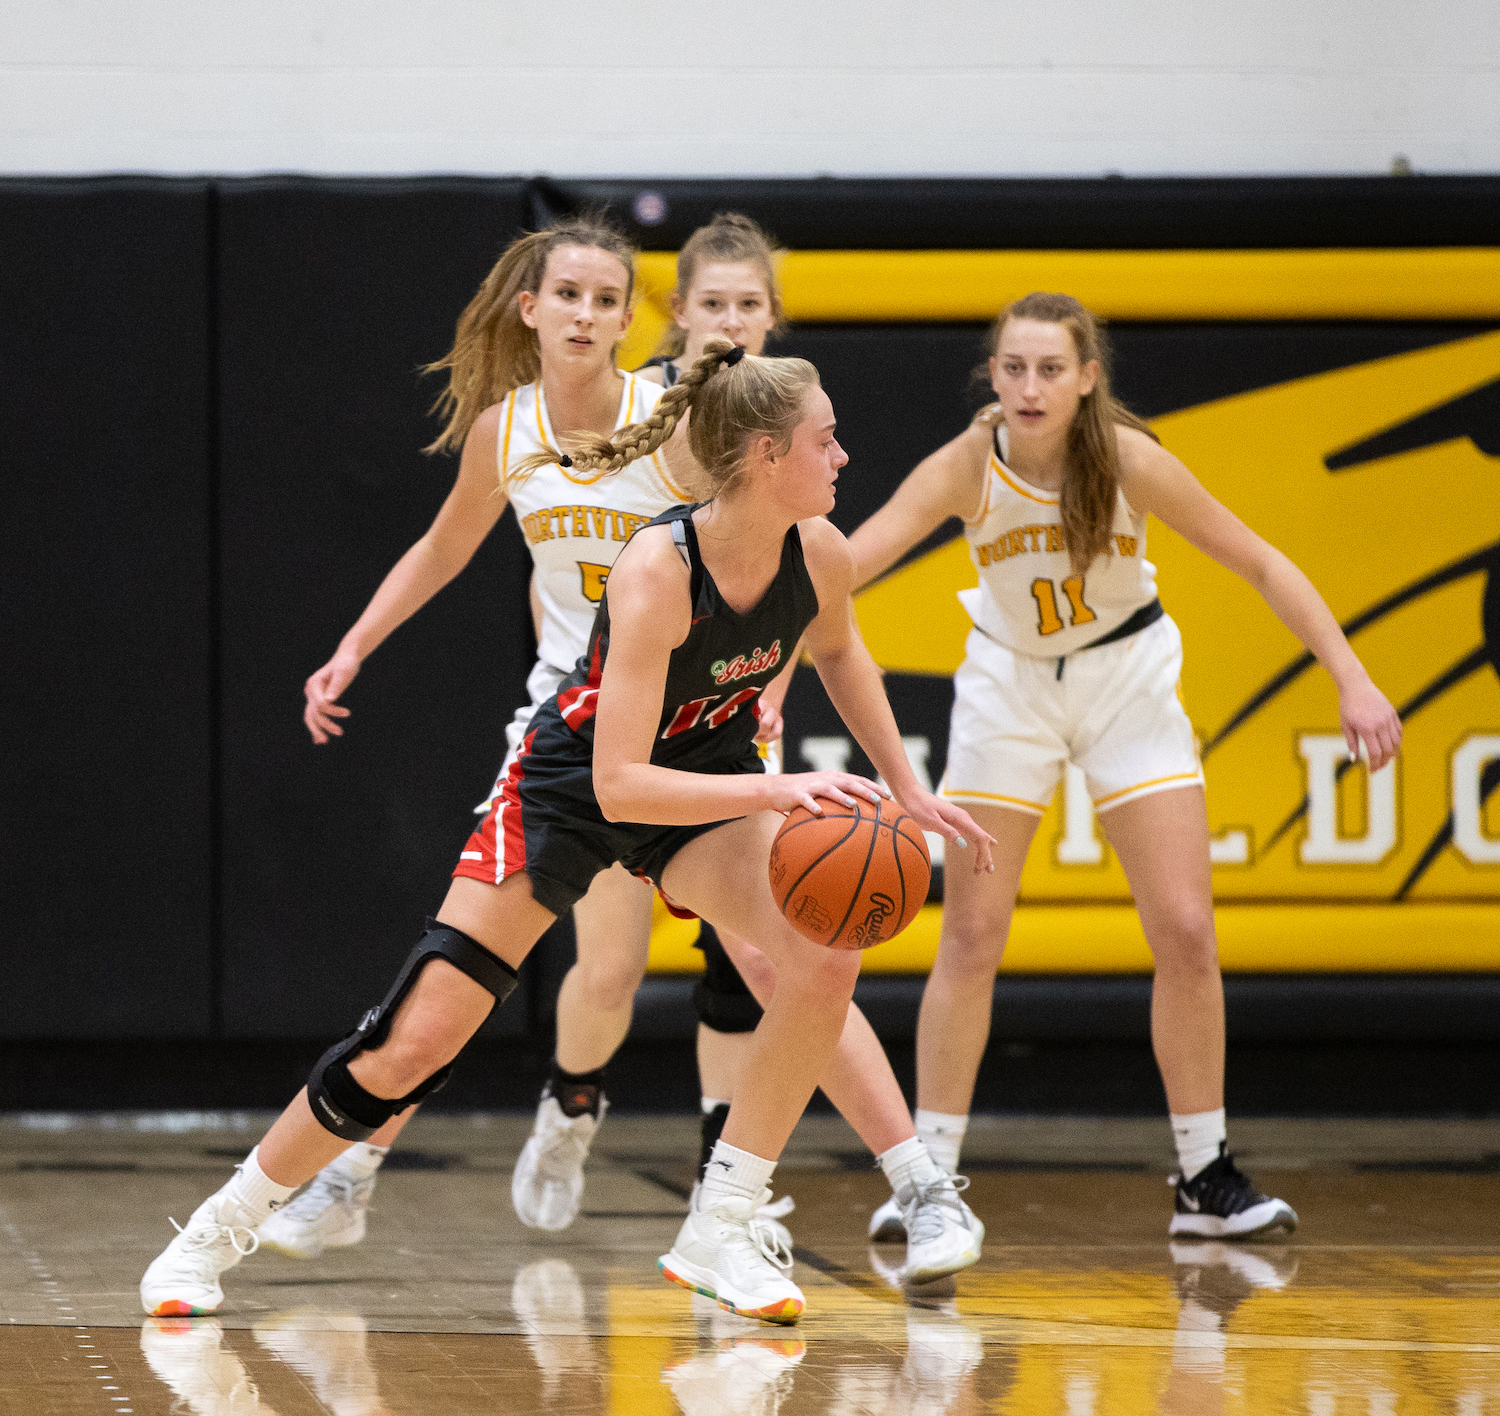 Kaitlyn Moeller Garners Honorable Mention All-Ohio Recognition